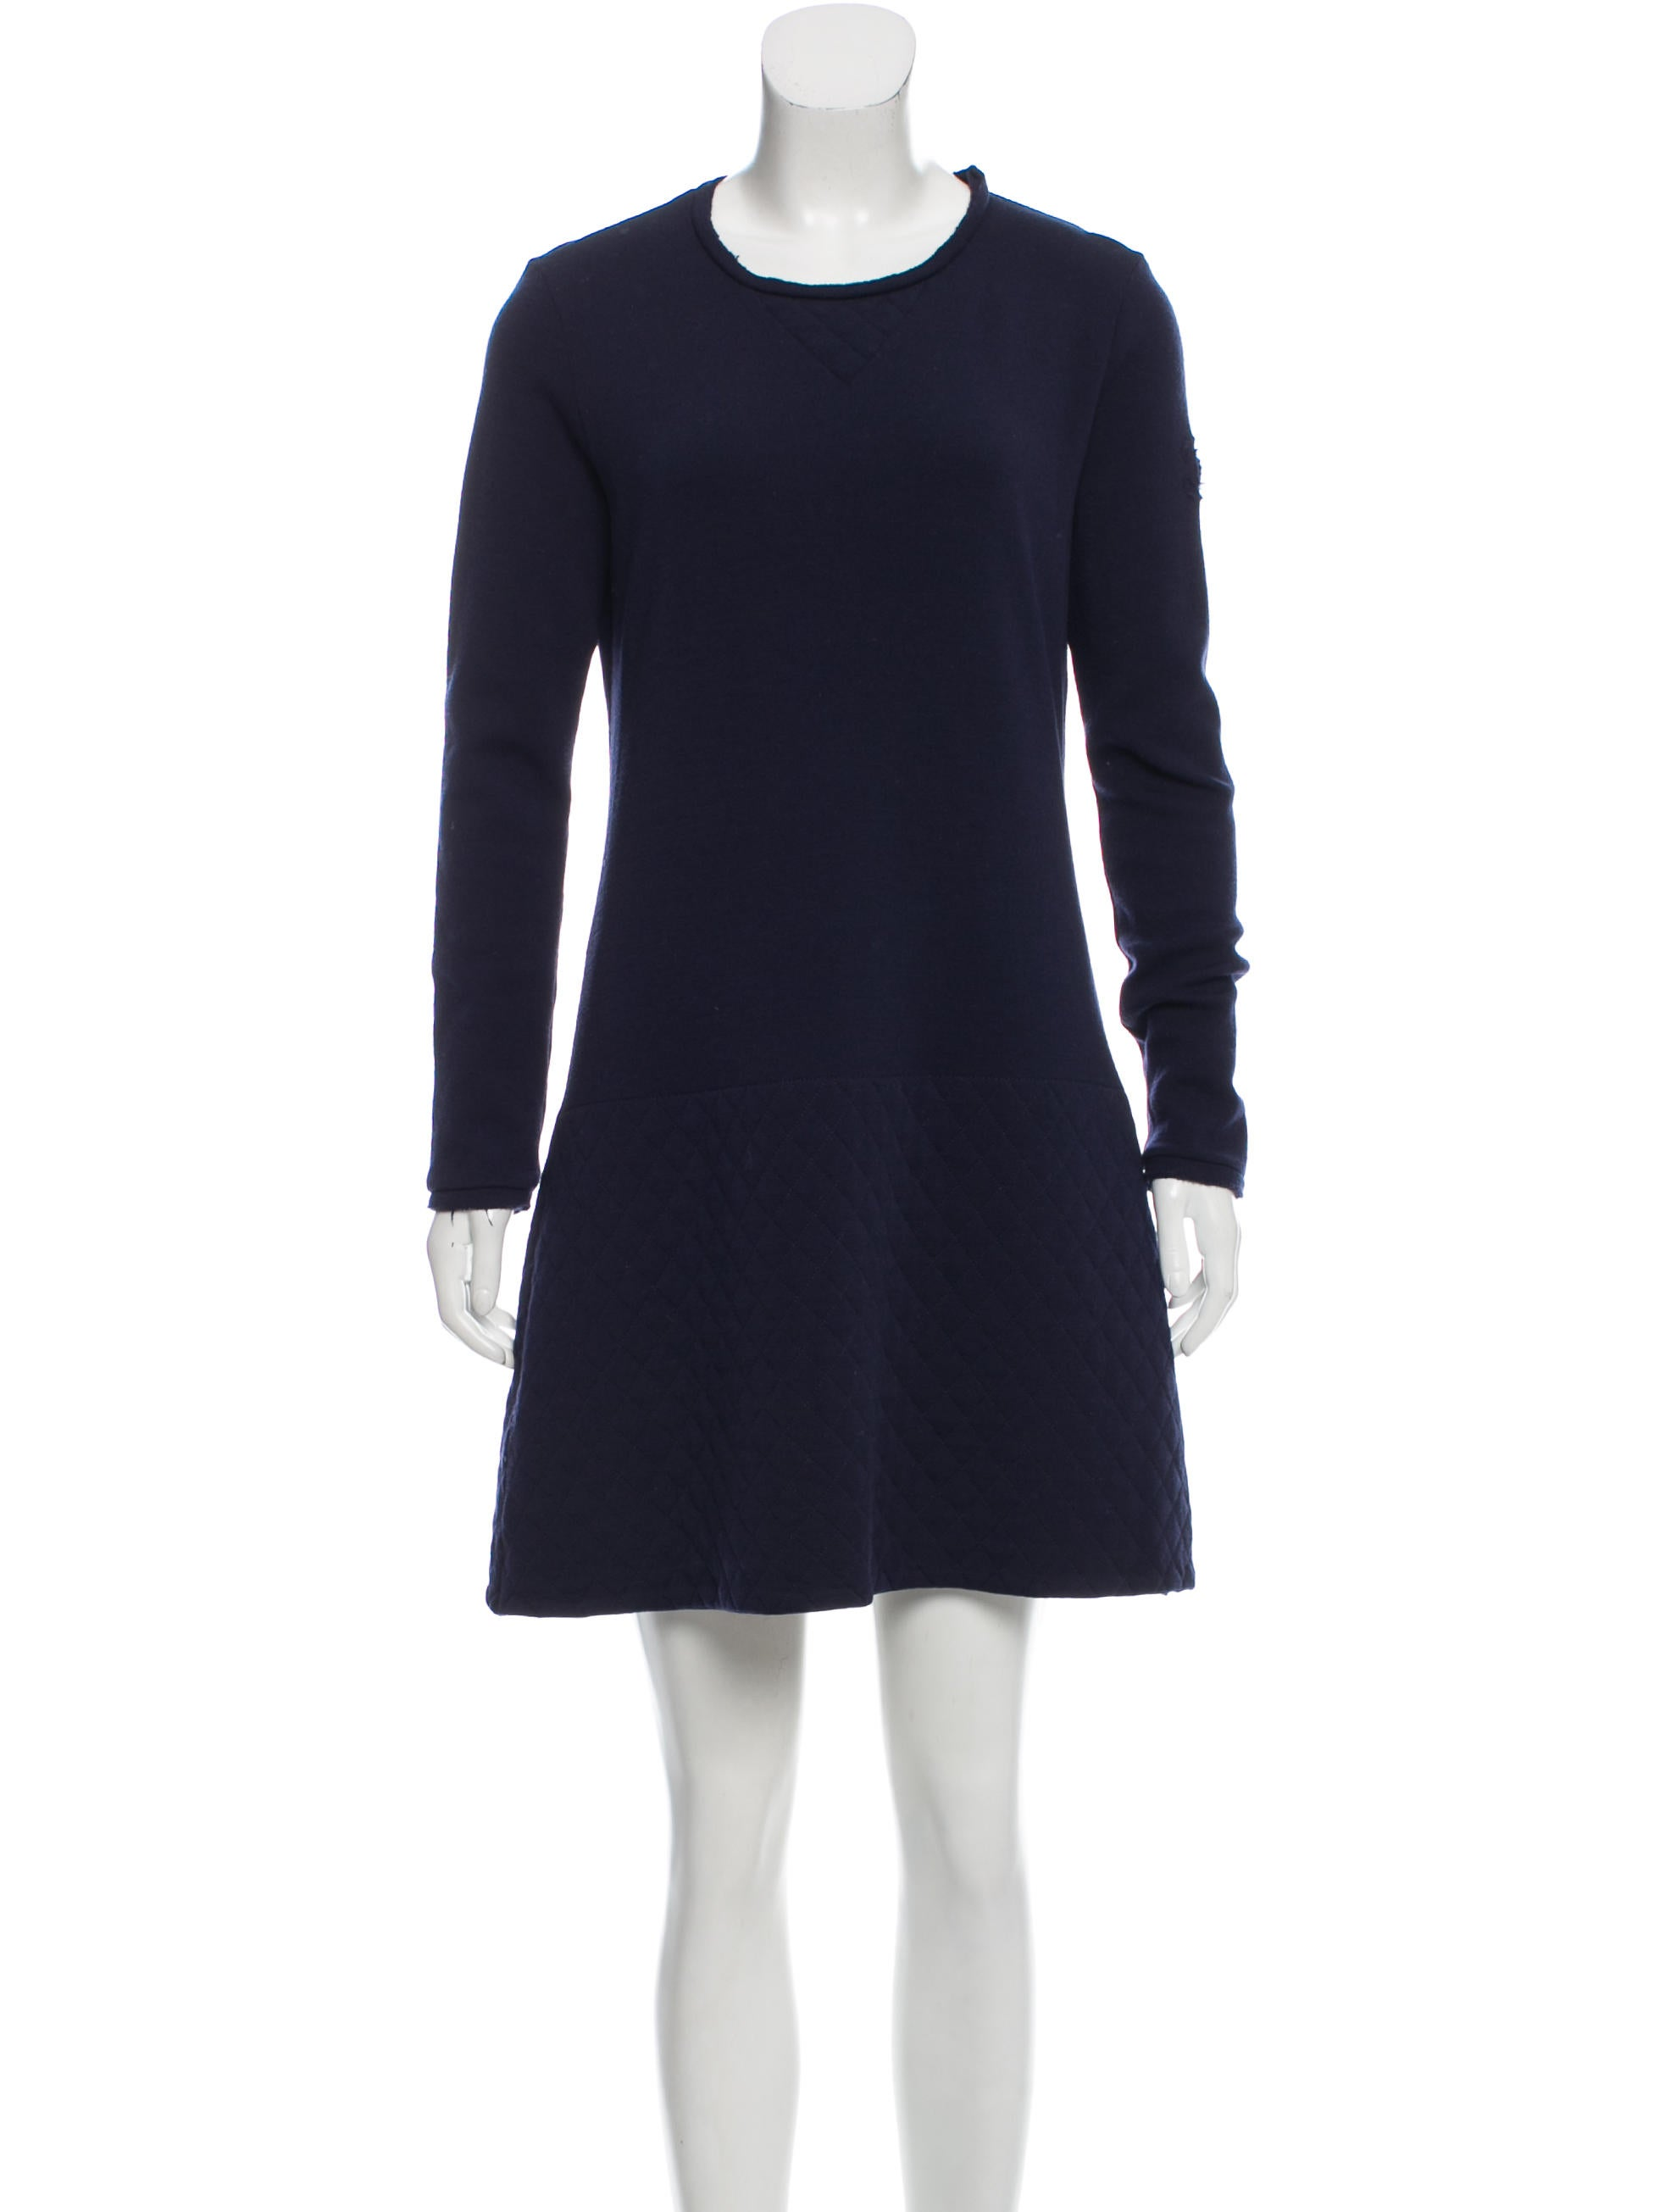 Chanel Quilted Wool Dress Clothing Cha180865 The